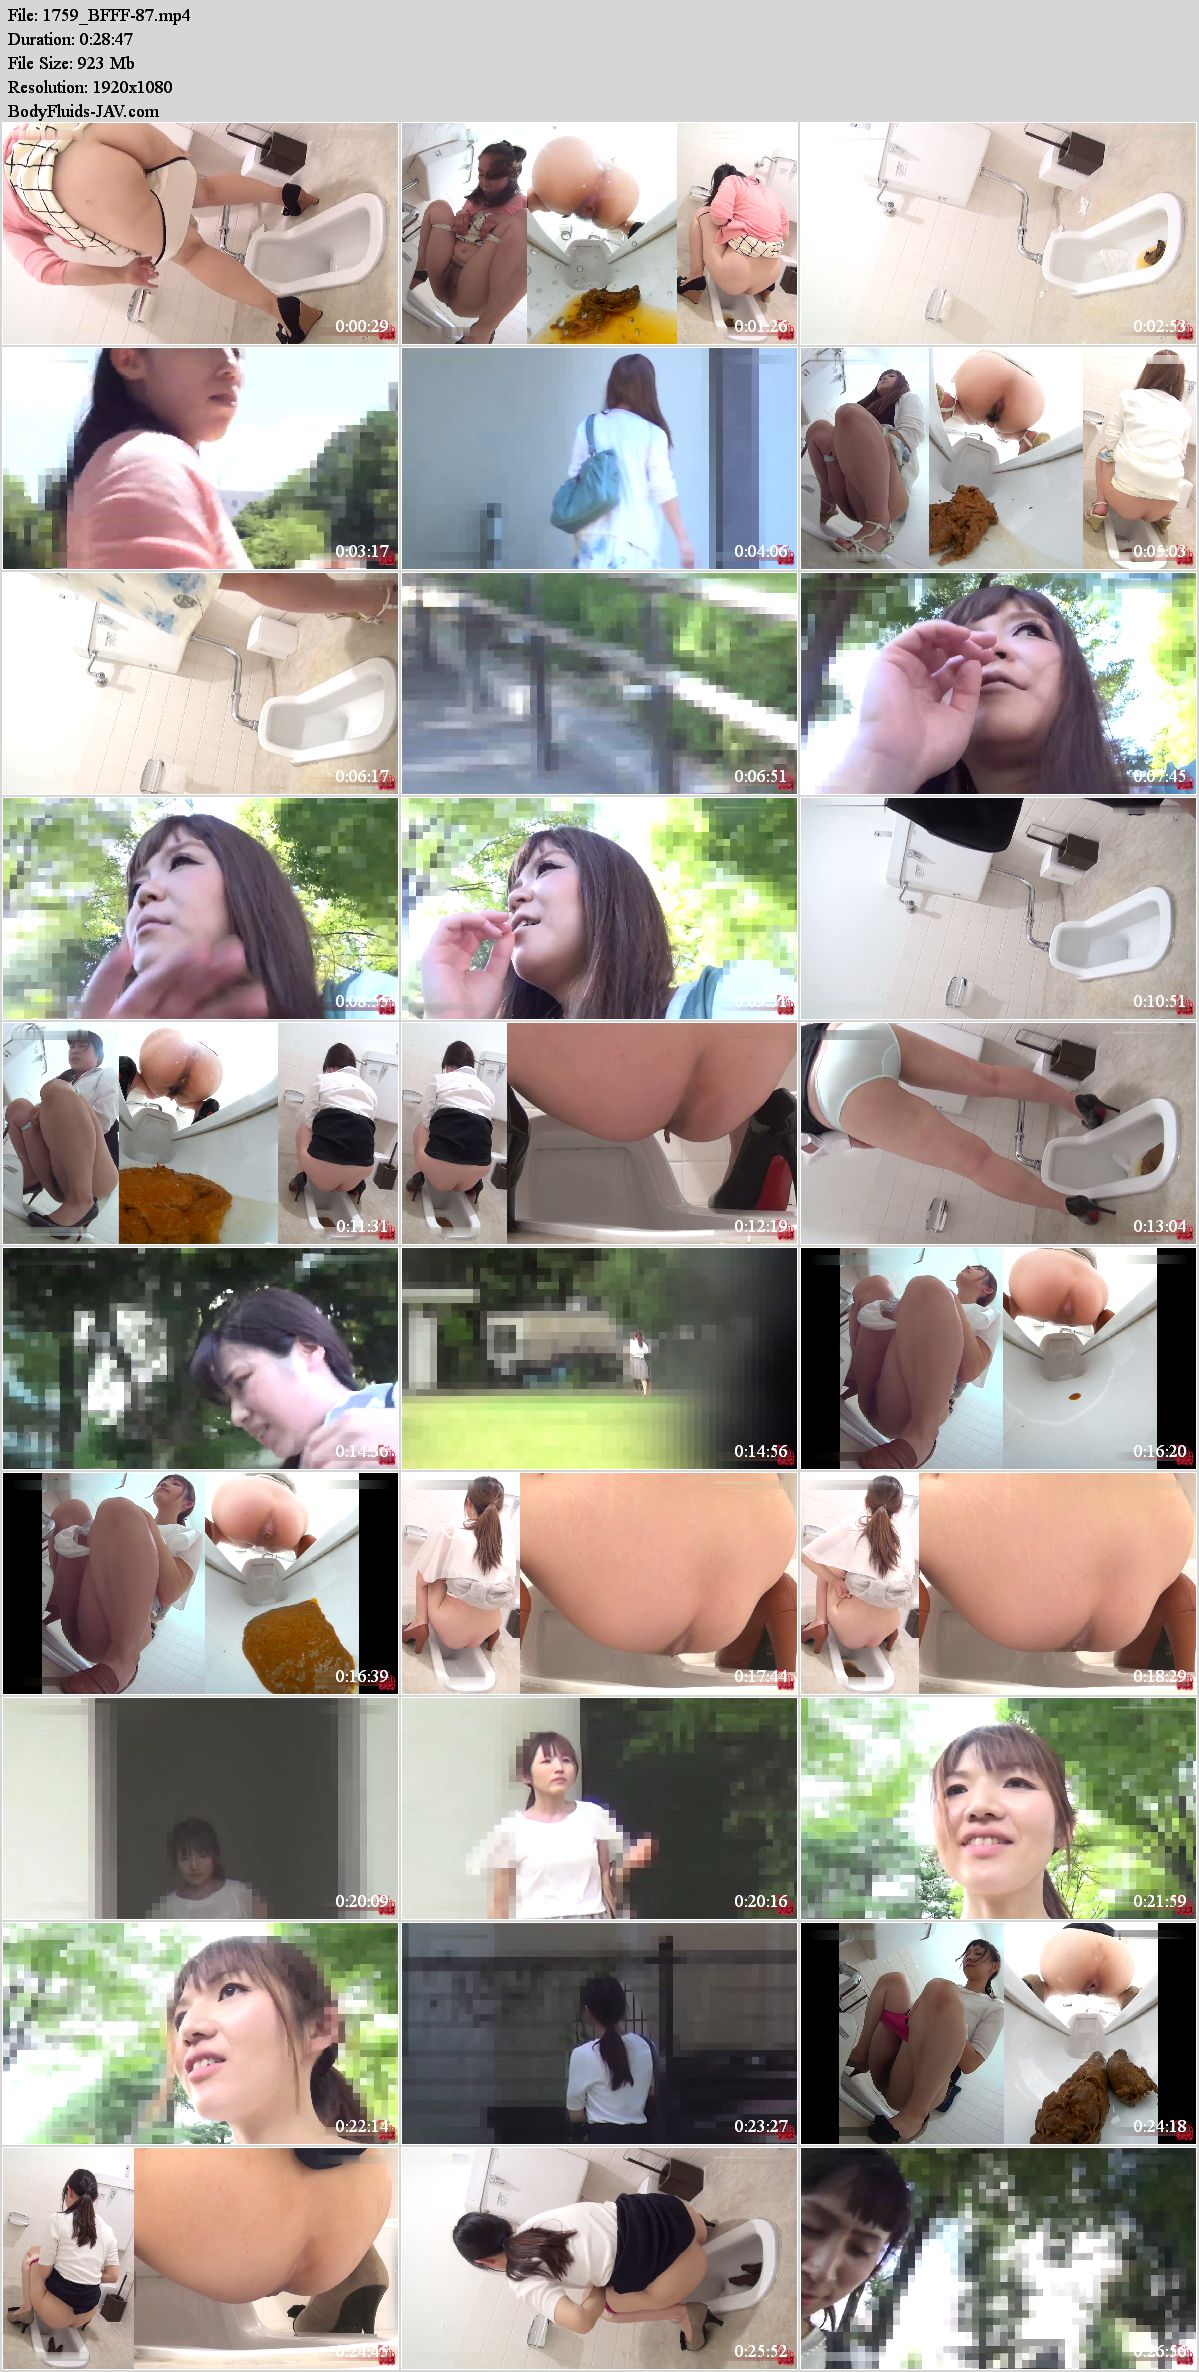 BFFF-87 Shame girls after defecation in public toilet. (HD 1080p)